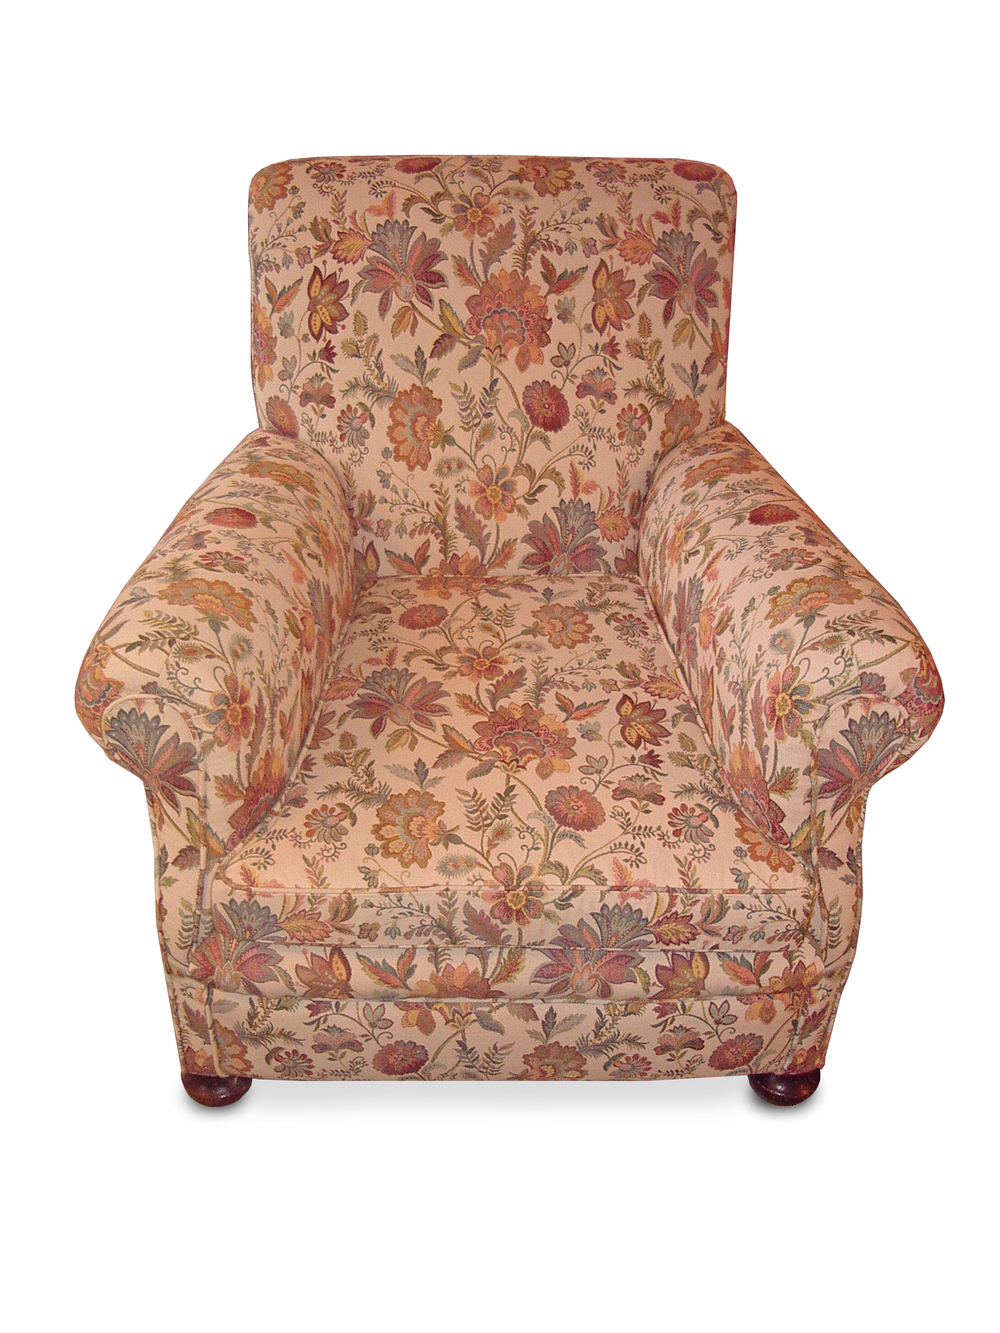 Classic armchair in striking flower pattern fabric running throughout the chair, stitched facing arms and feather/down cushion with bun feet